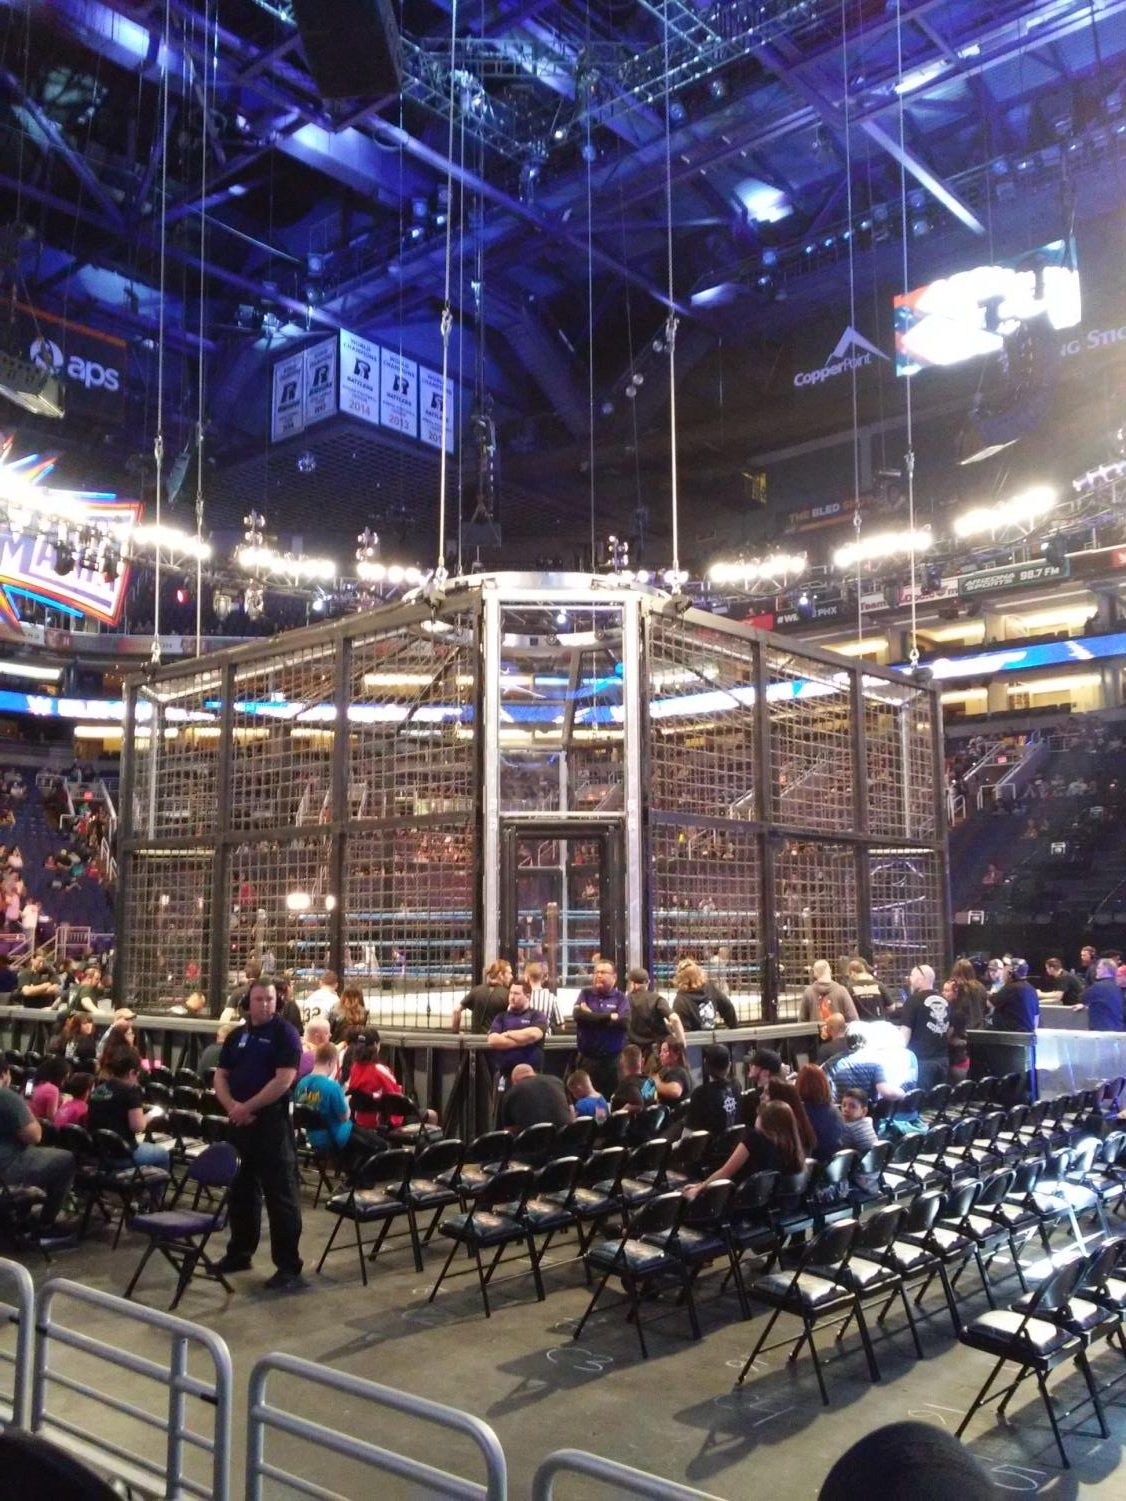 World Wrestling Entertainment put on their 10th annual Elimination Chamber pay-per-view, an event that over-delivered and ended with an instant classic.